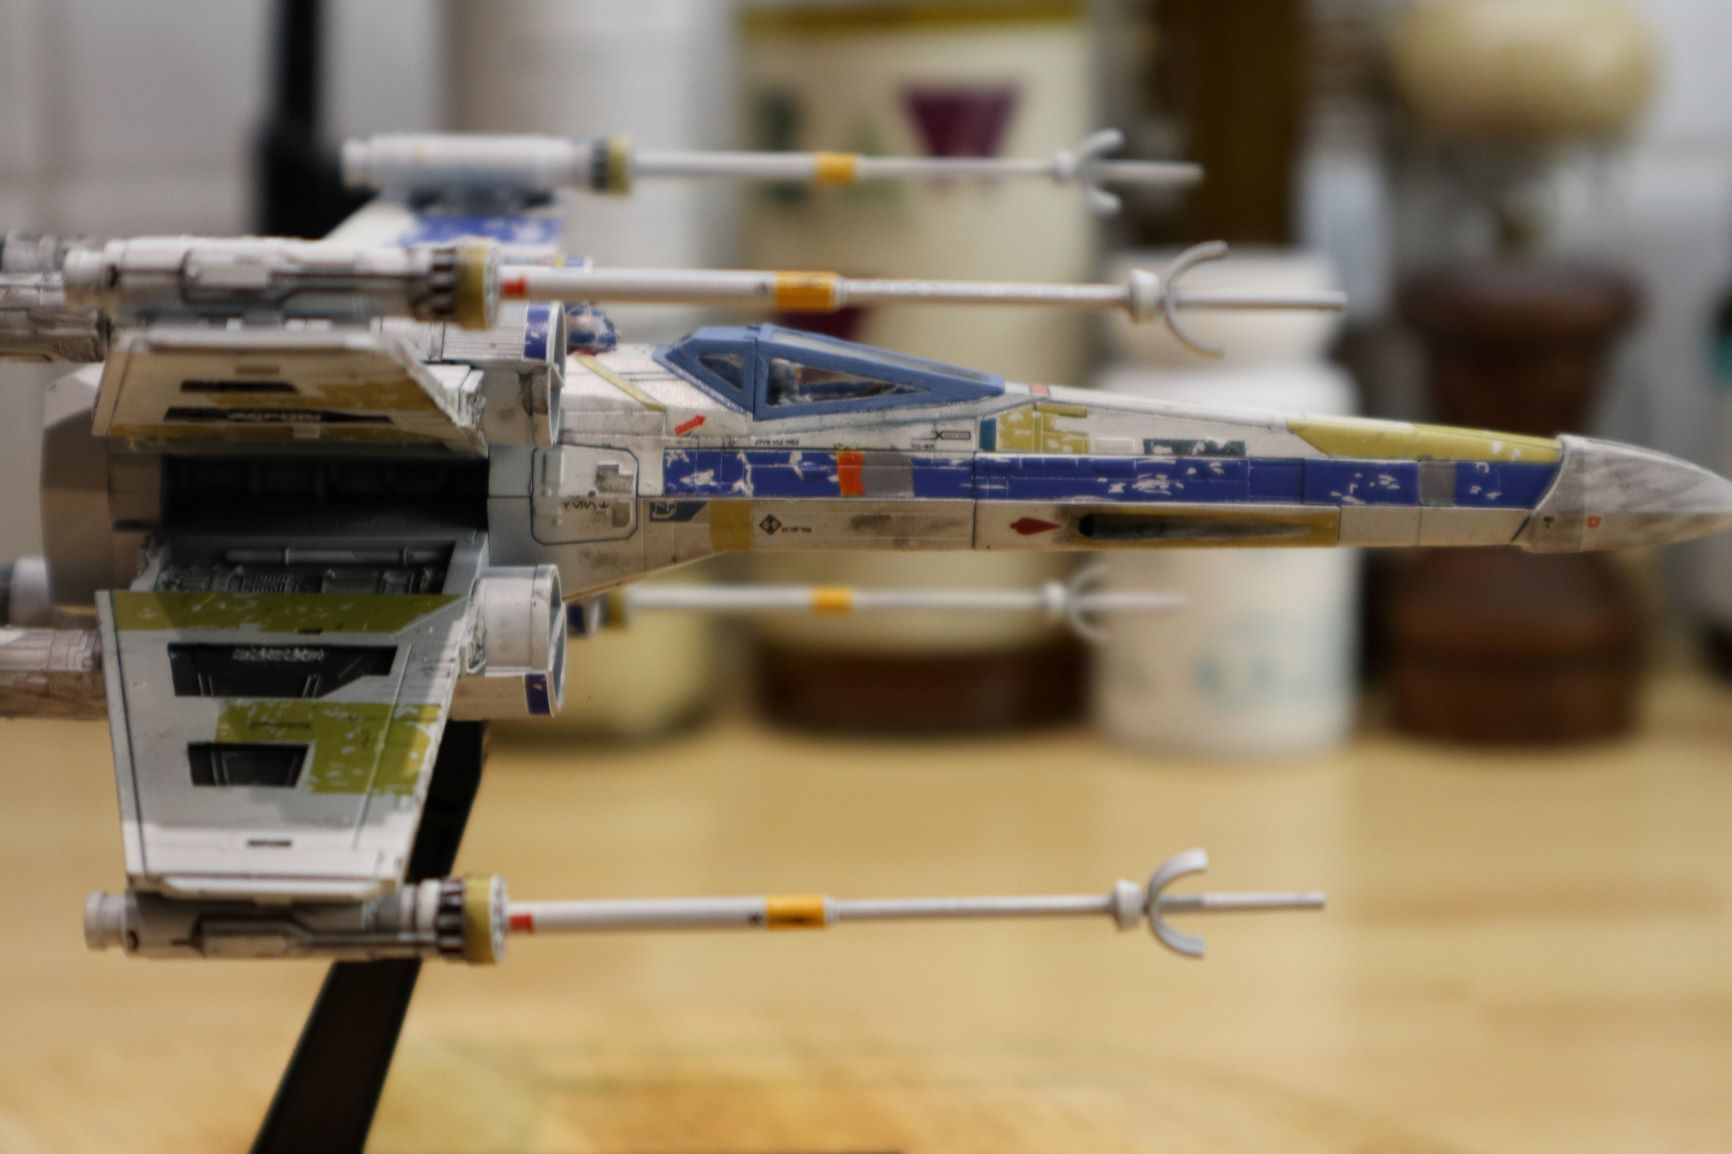 Bandai 1 72 X Wing Blue Leader Rogue One Ver Rpf Costume And Prop Maker Community X Wing Star Wars Vehicles X Wing Miniatures